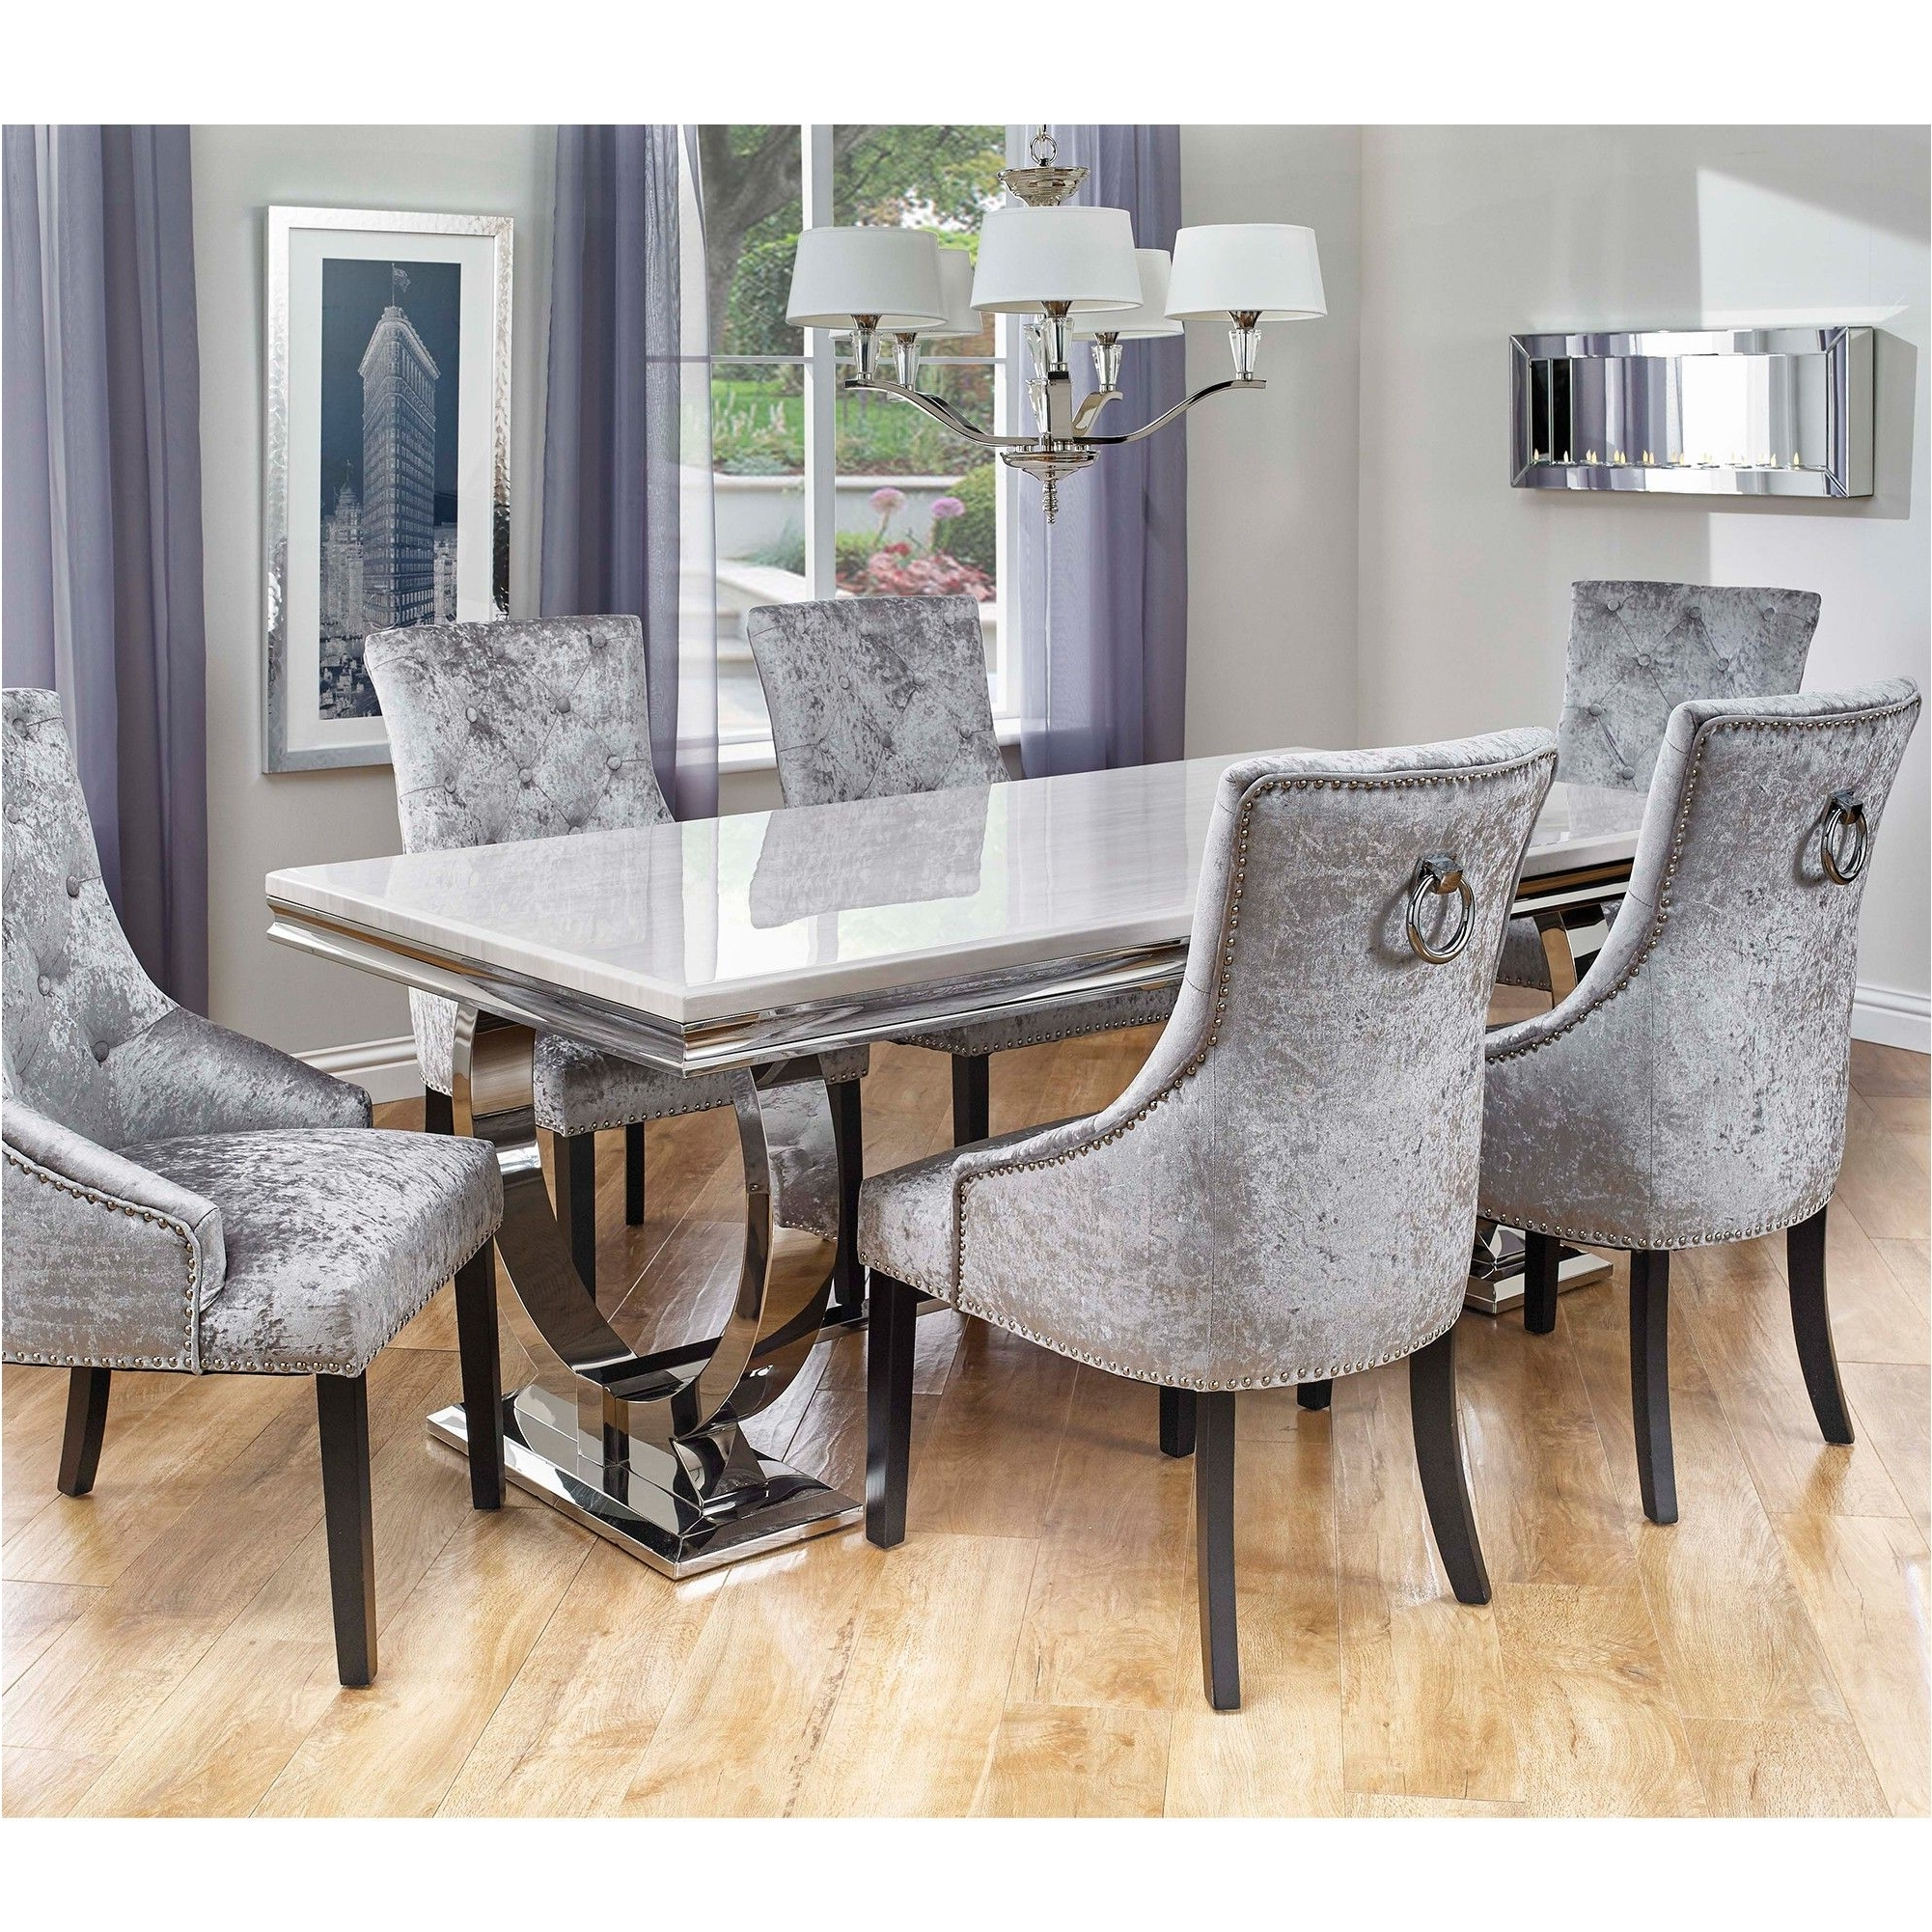 6 Chairs And Dining Tables throughout Current Spectacular Collection Valentina Dining Table And 6 Chairs Dining